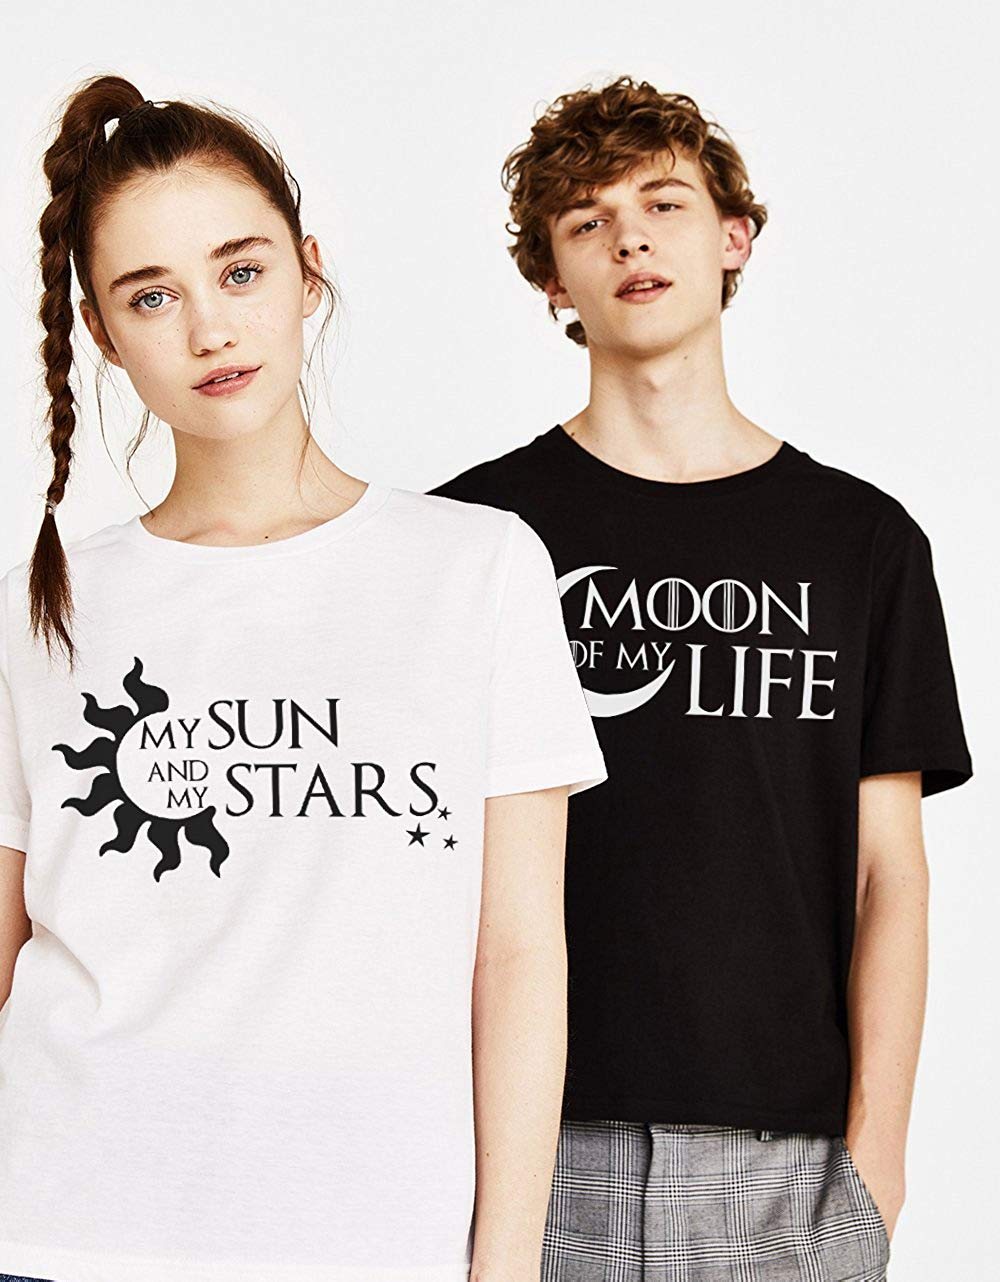 Couple Tshirt Valentine's Day Gift His and Hers Love Shirts Moon of My Life My Sun Stars Funny Cotton Women Lovers Bff tshirts image